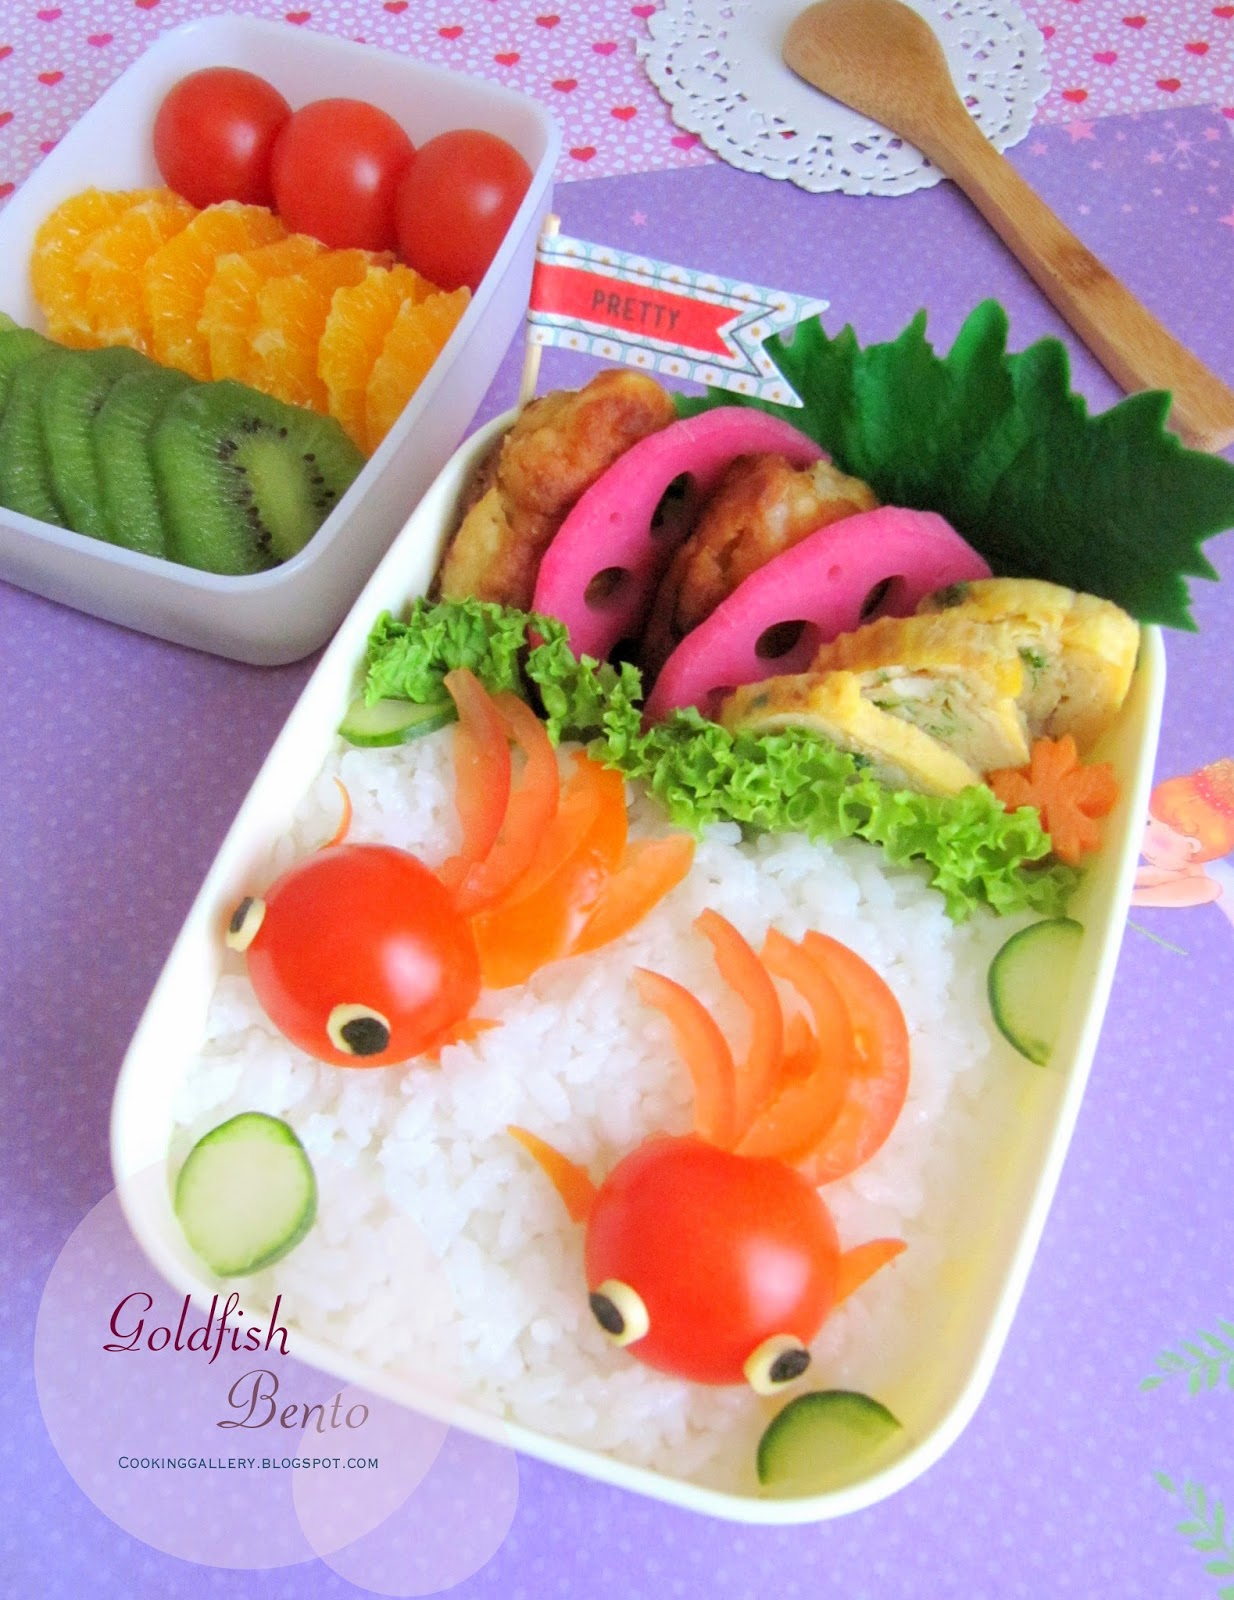 Goldfish Bento | Cooking Gallery